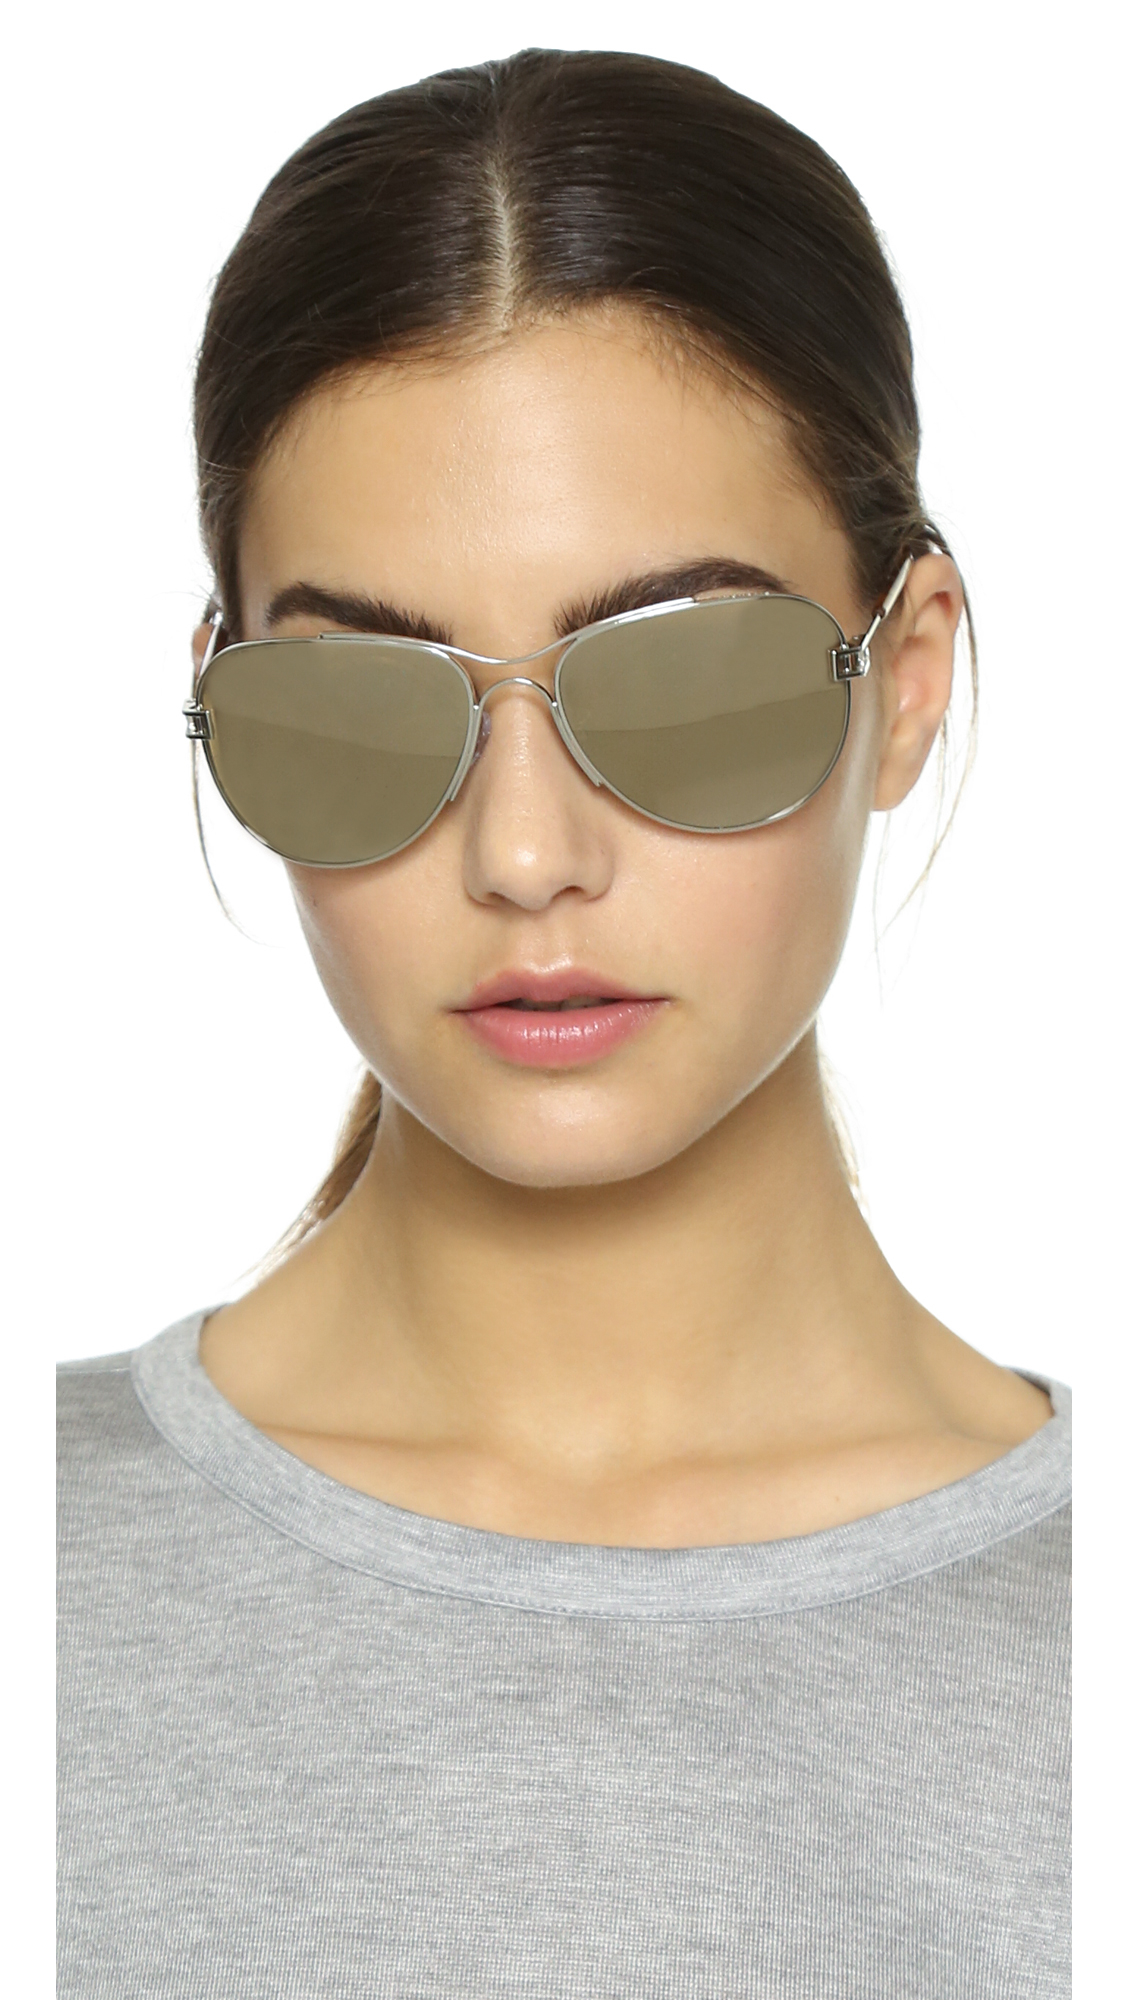 The New It Sunglasses for 2015: Dior Technologic